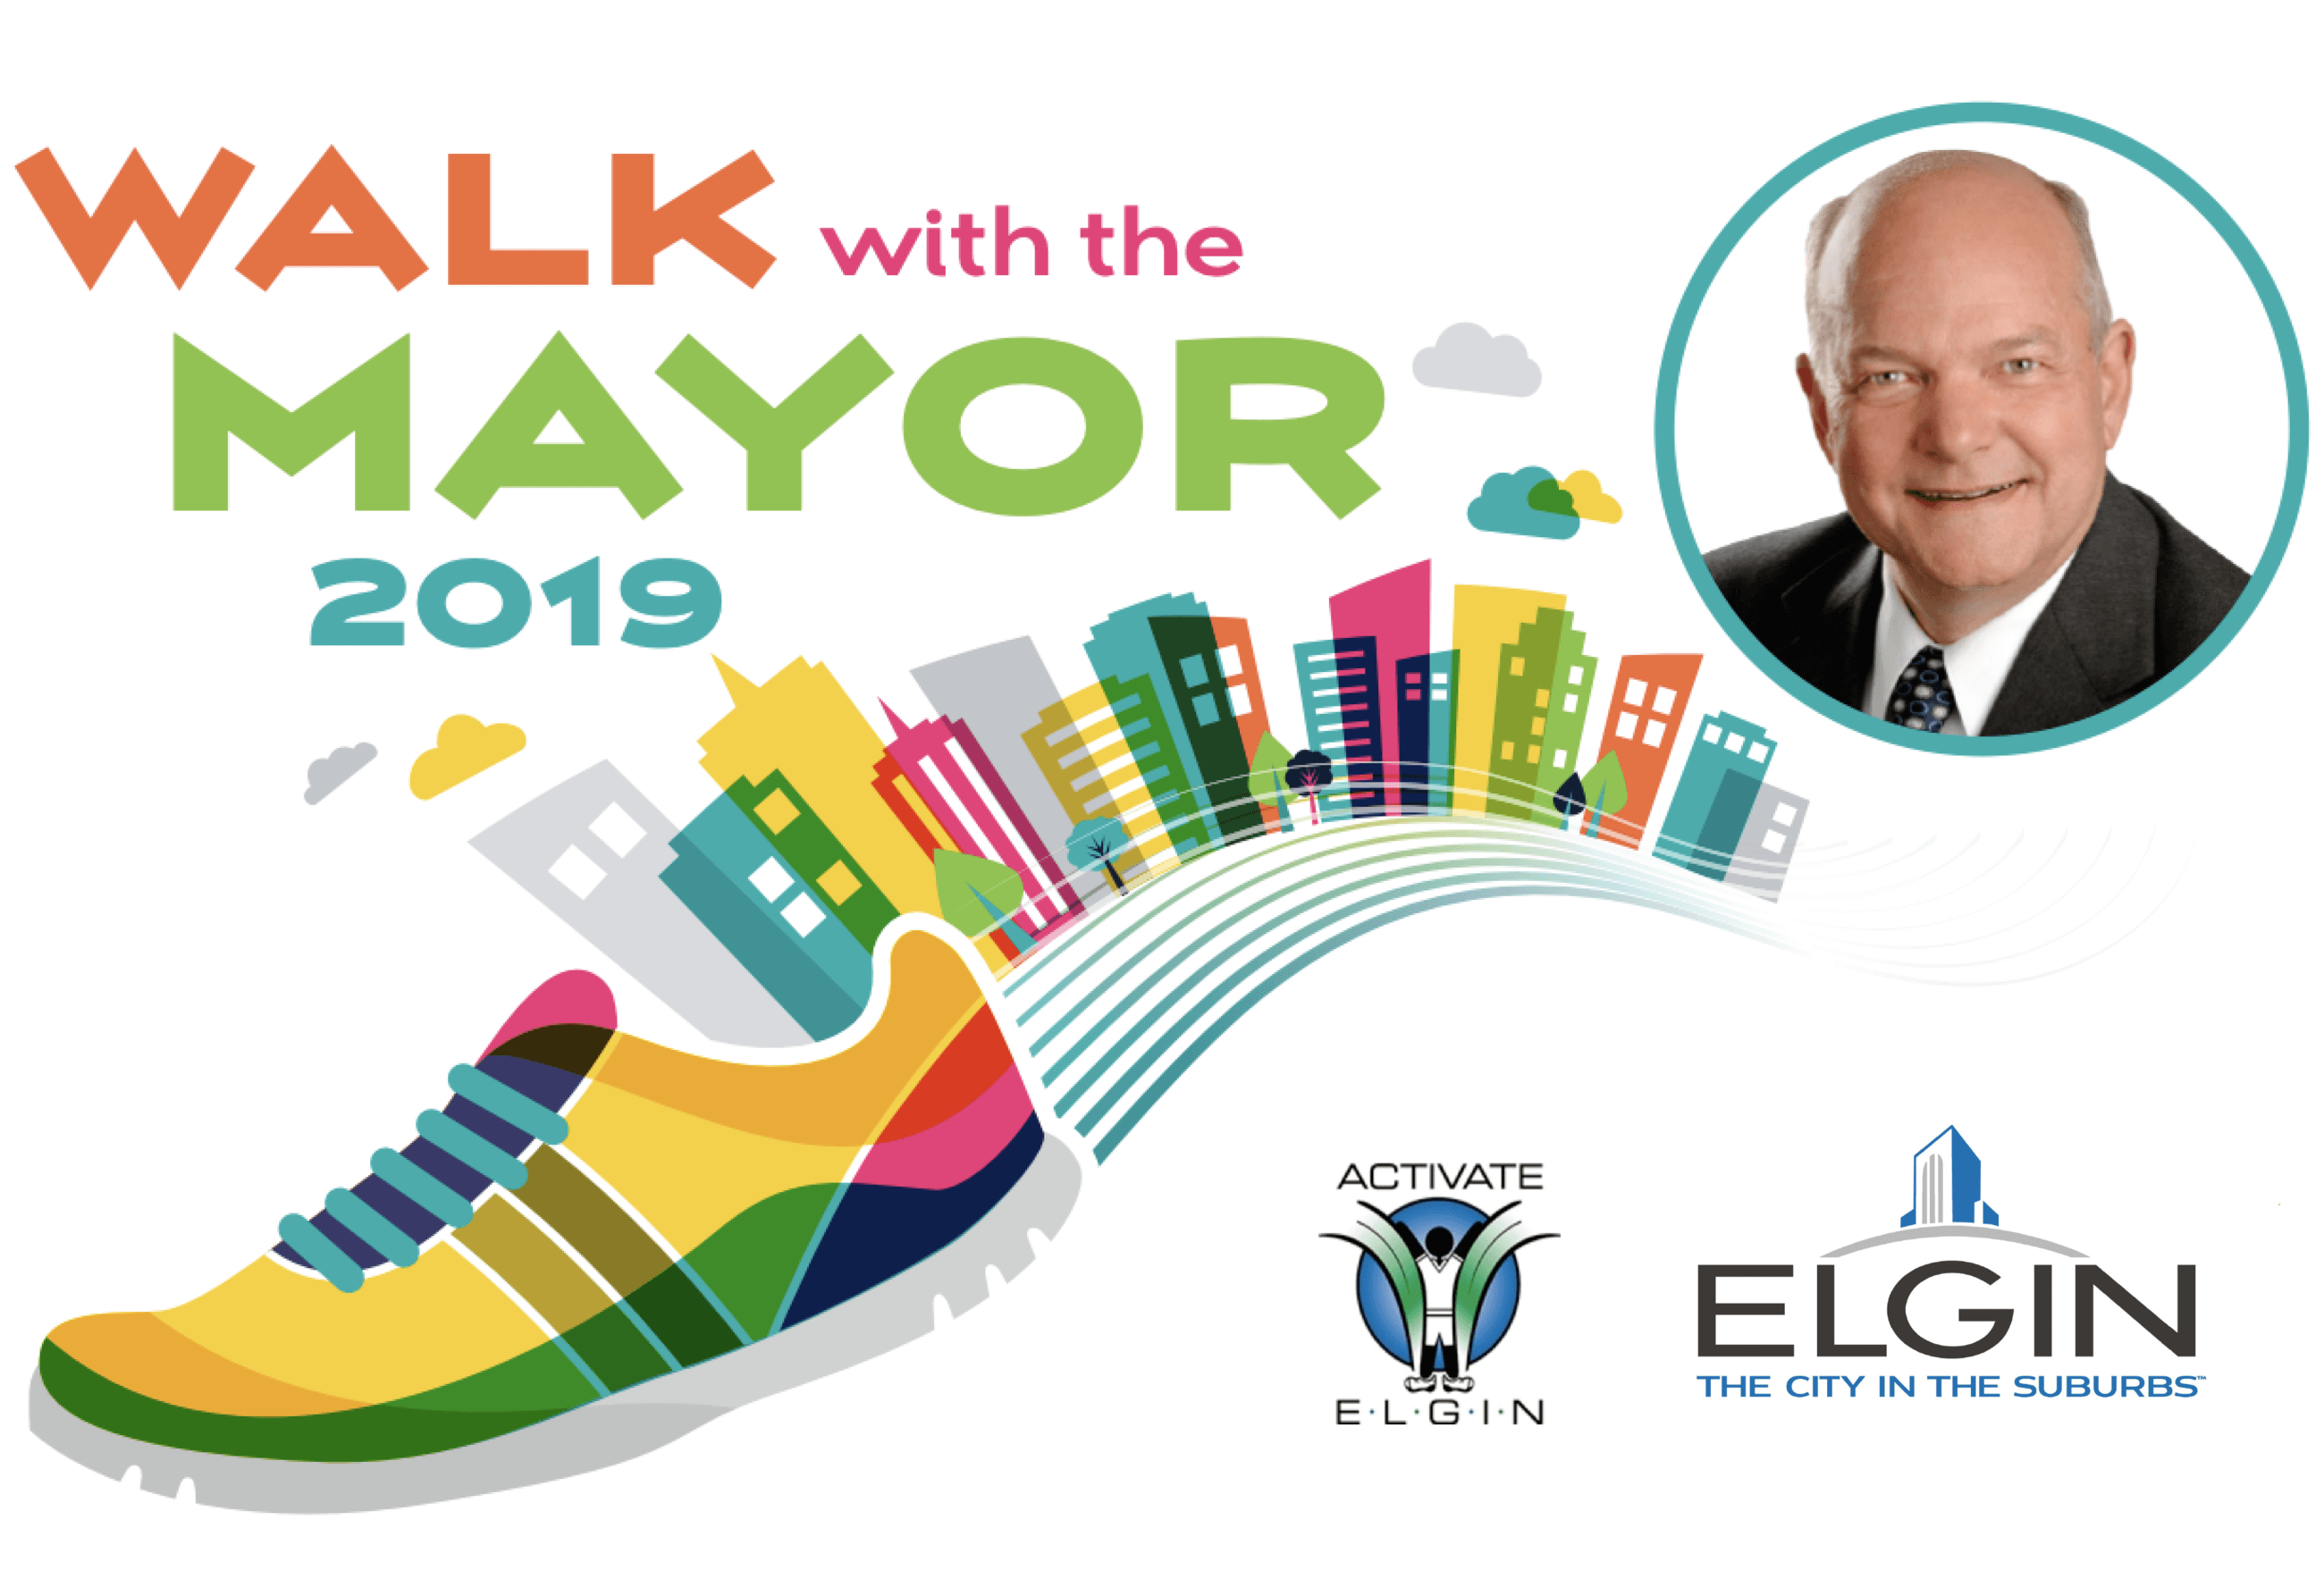 Walk with the Mayor 2019 Information